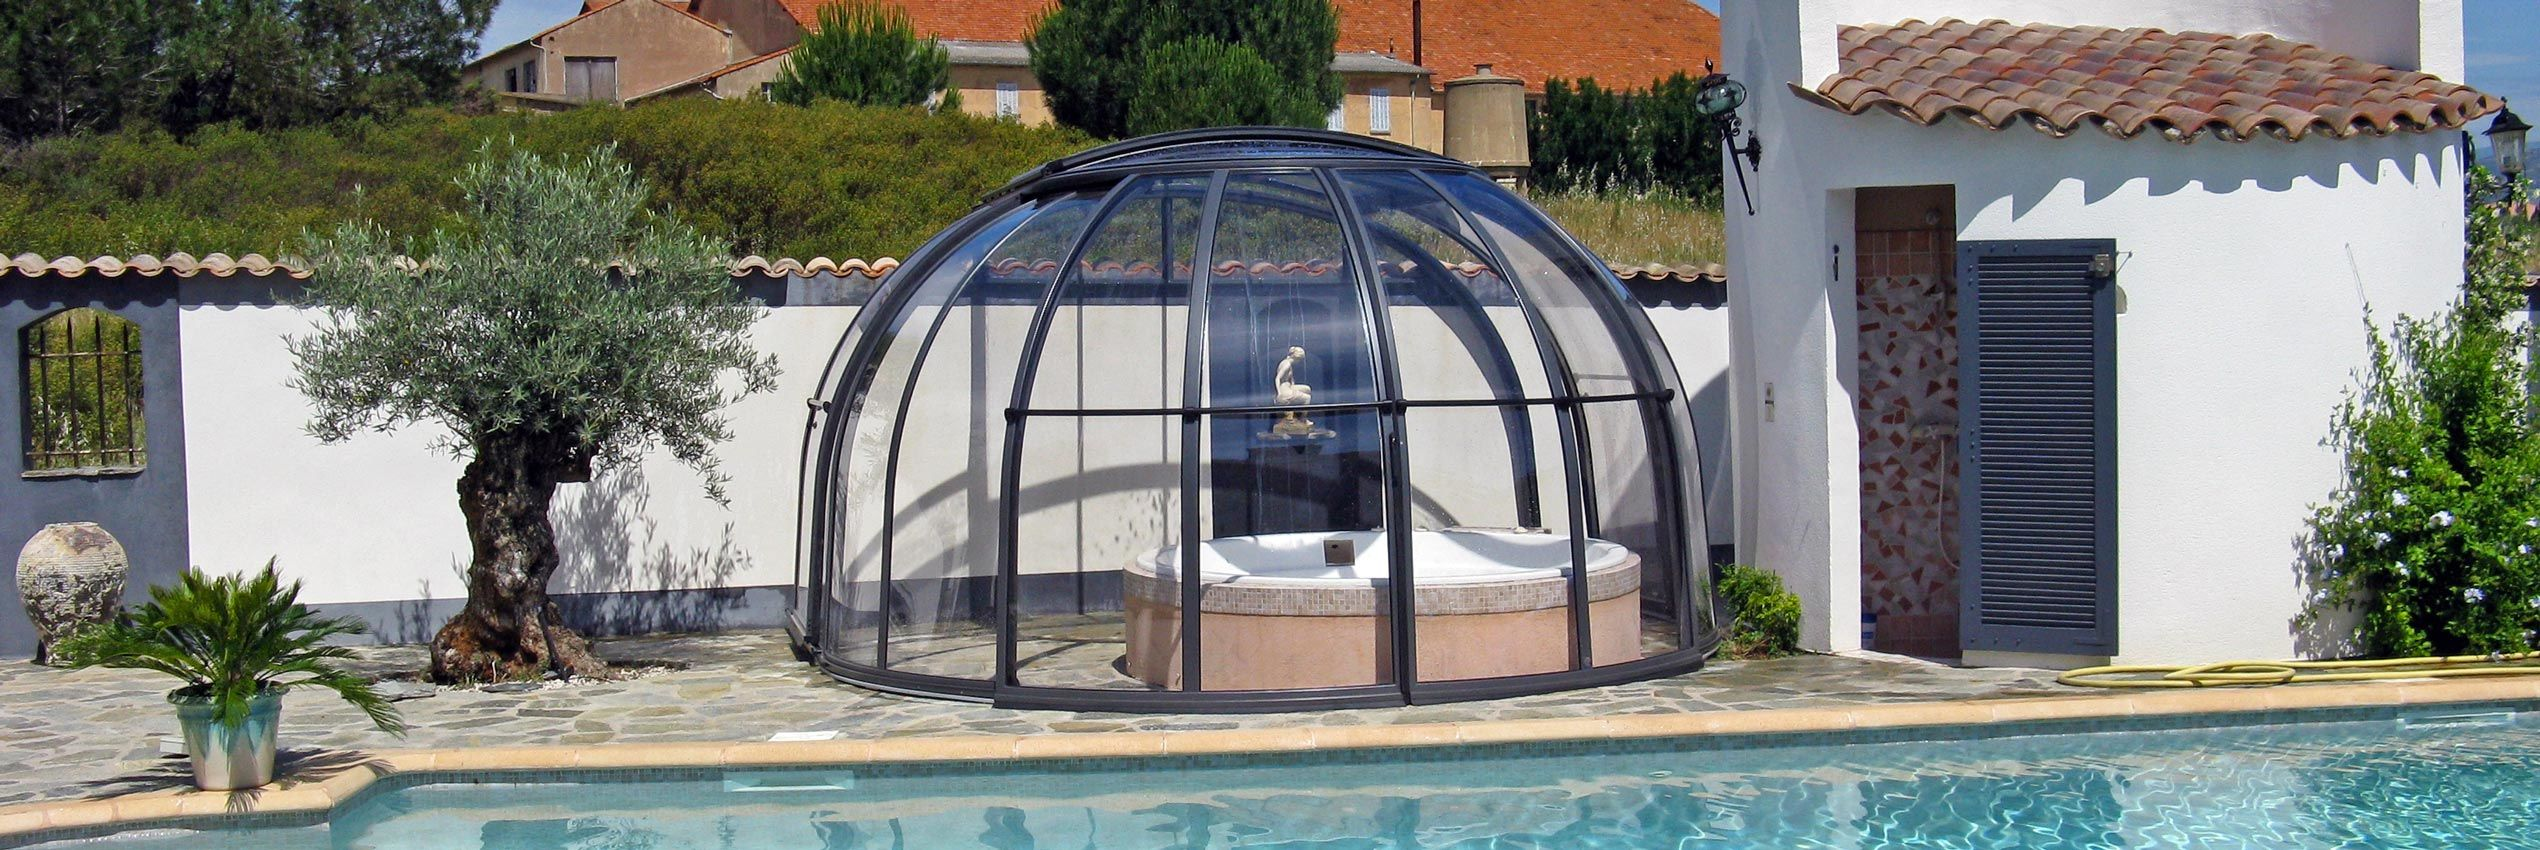 Closed Spa enclosure Oasis